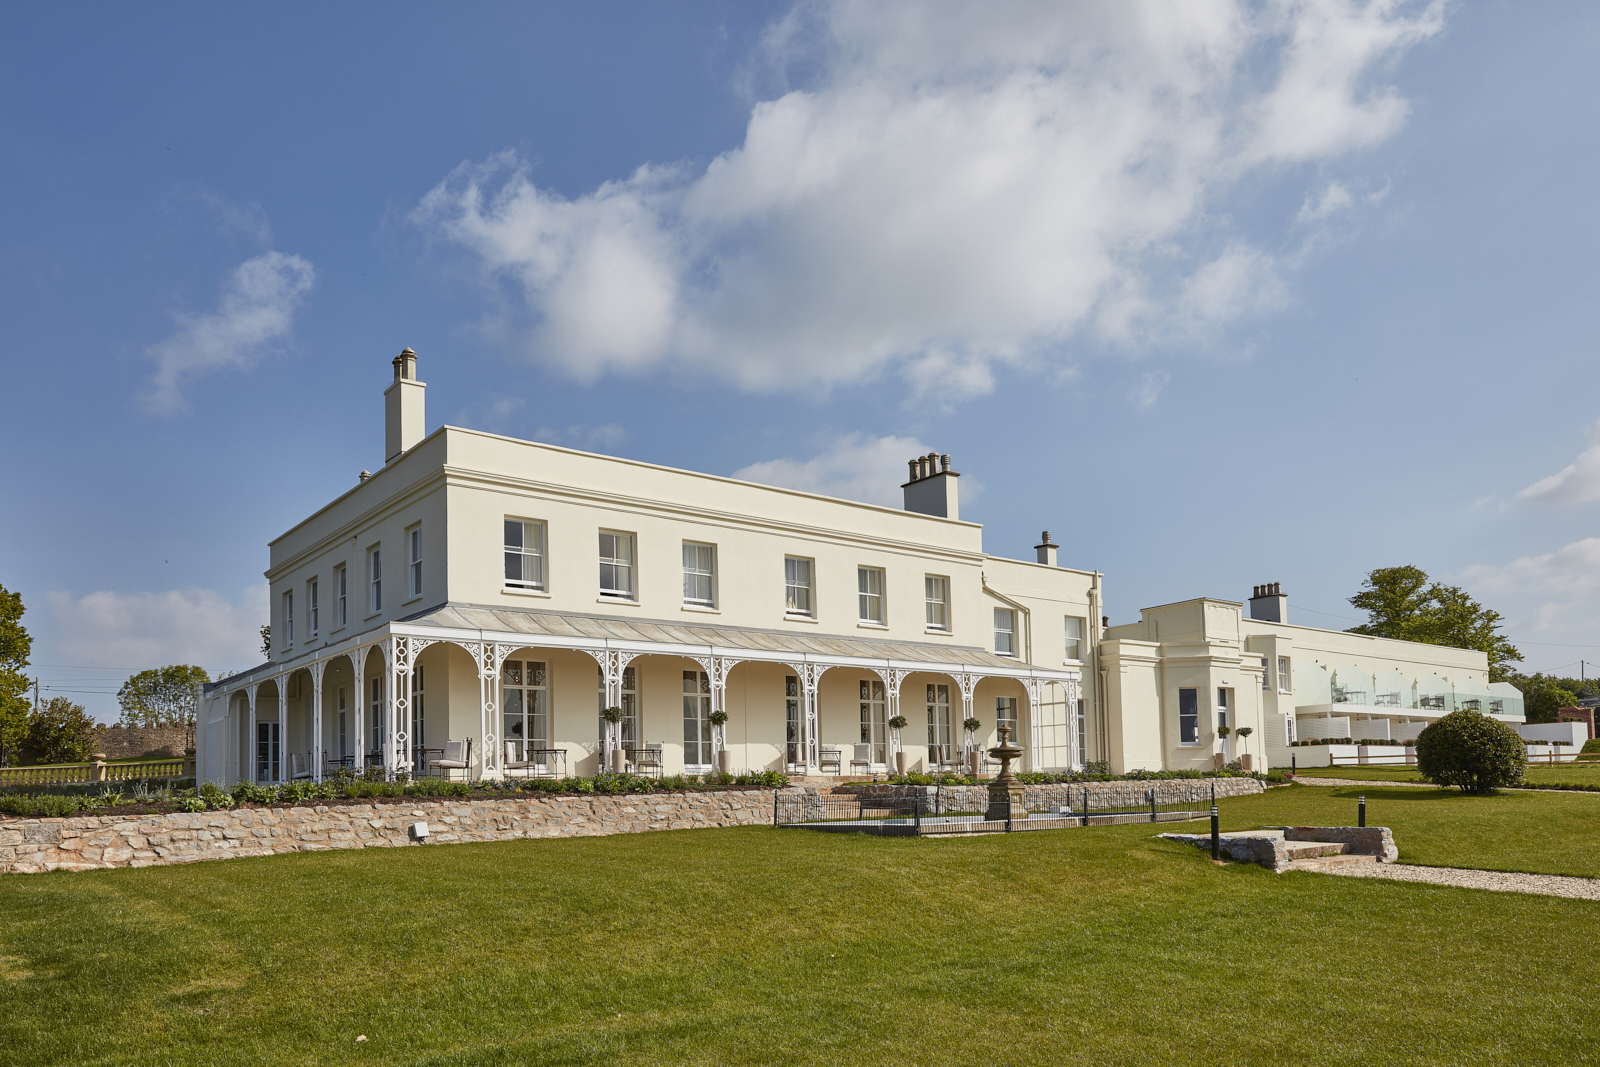 Lympstone Manor (Mark Ashbee)